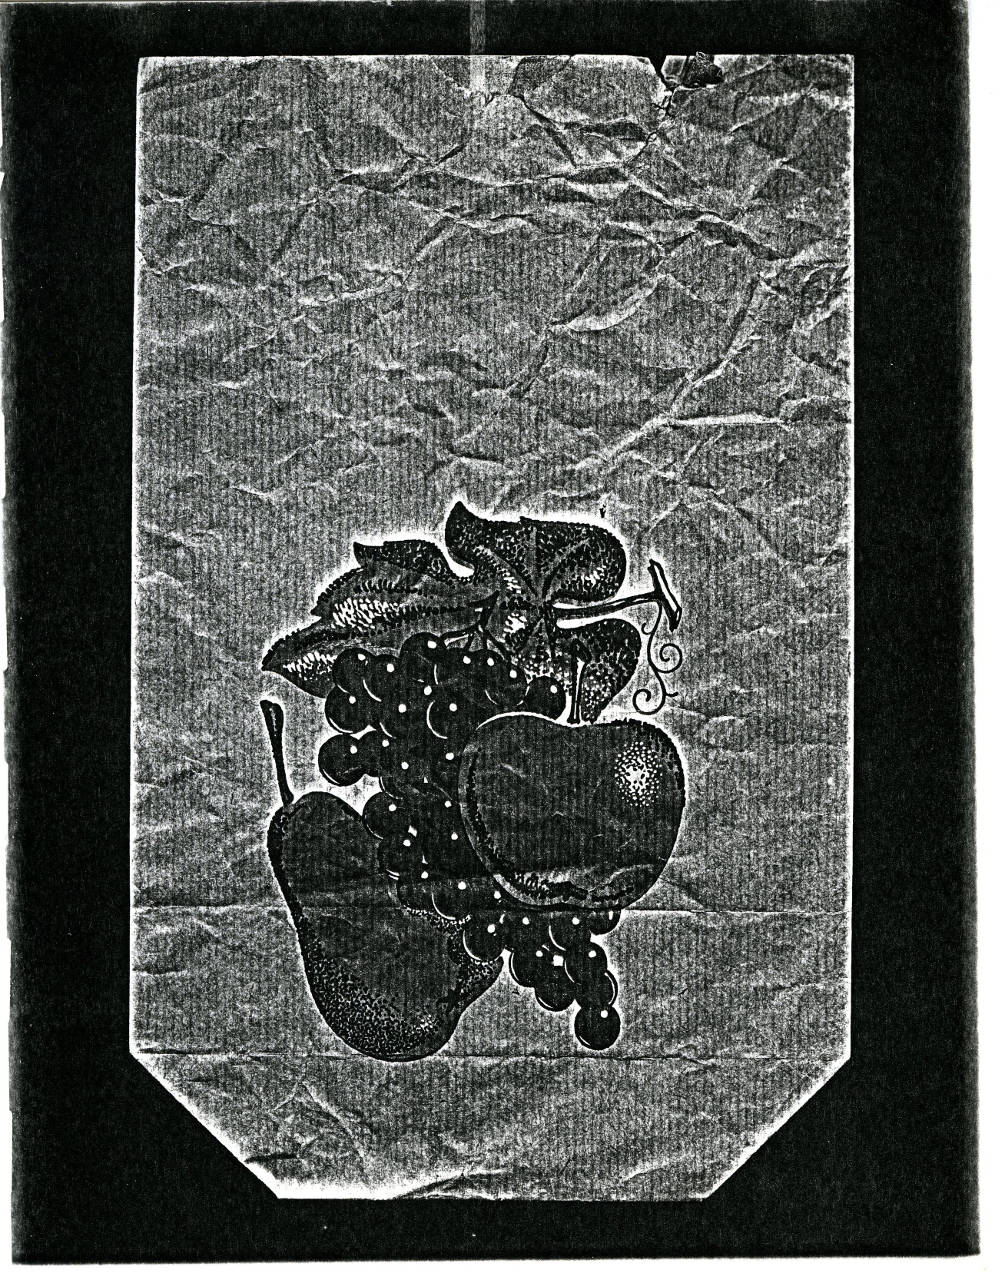 Pati Hill, Untitled (paper bag printed with fruit image), c. 1977-1979. Black and white photocopier print 27.9 x 21.6 cm 11 x 8 1/2 inches